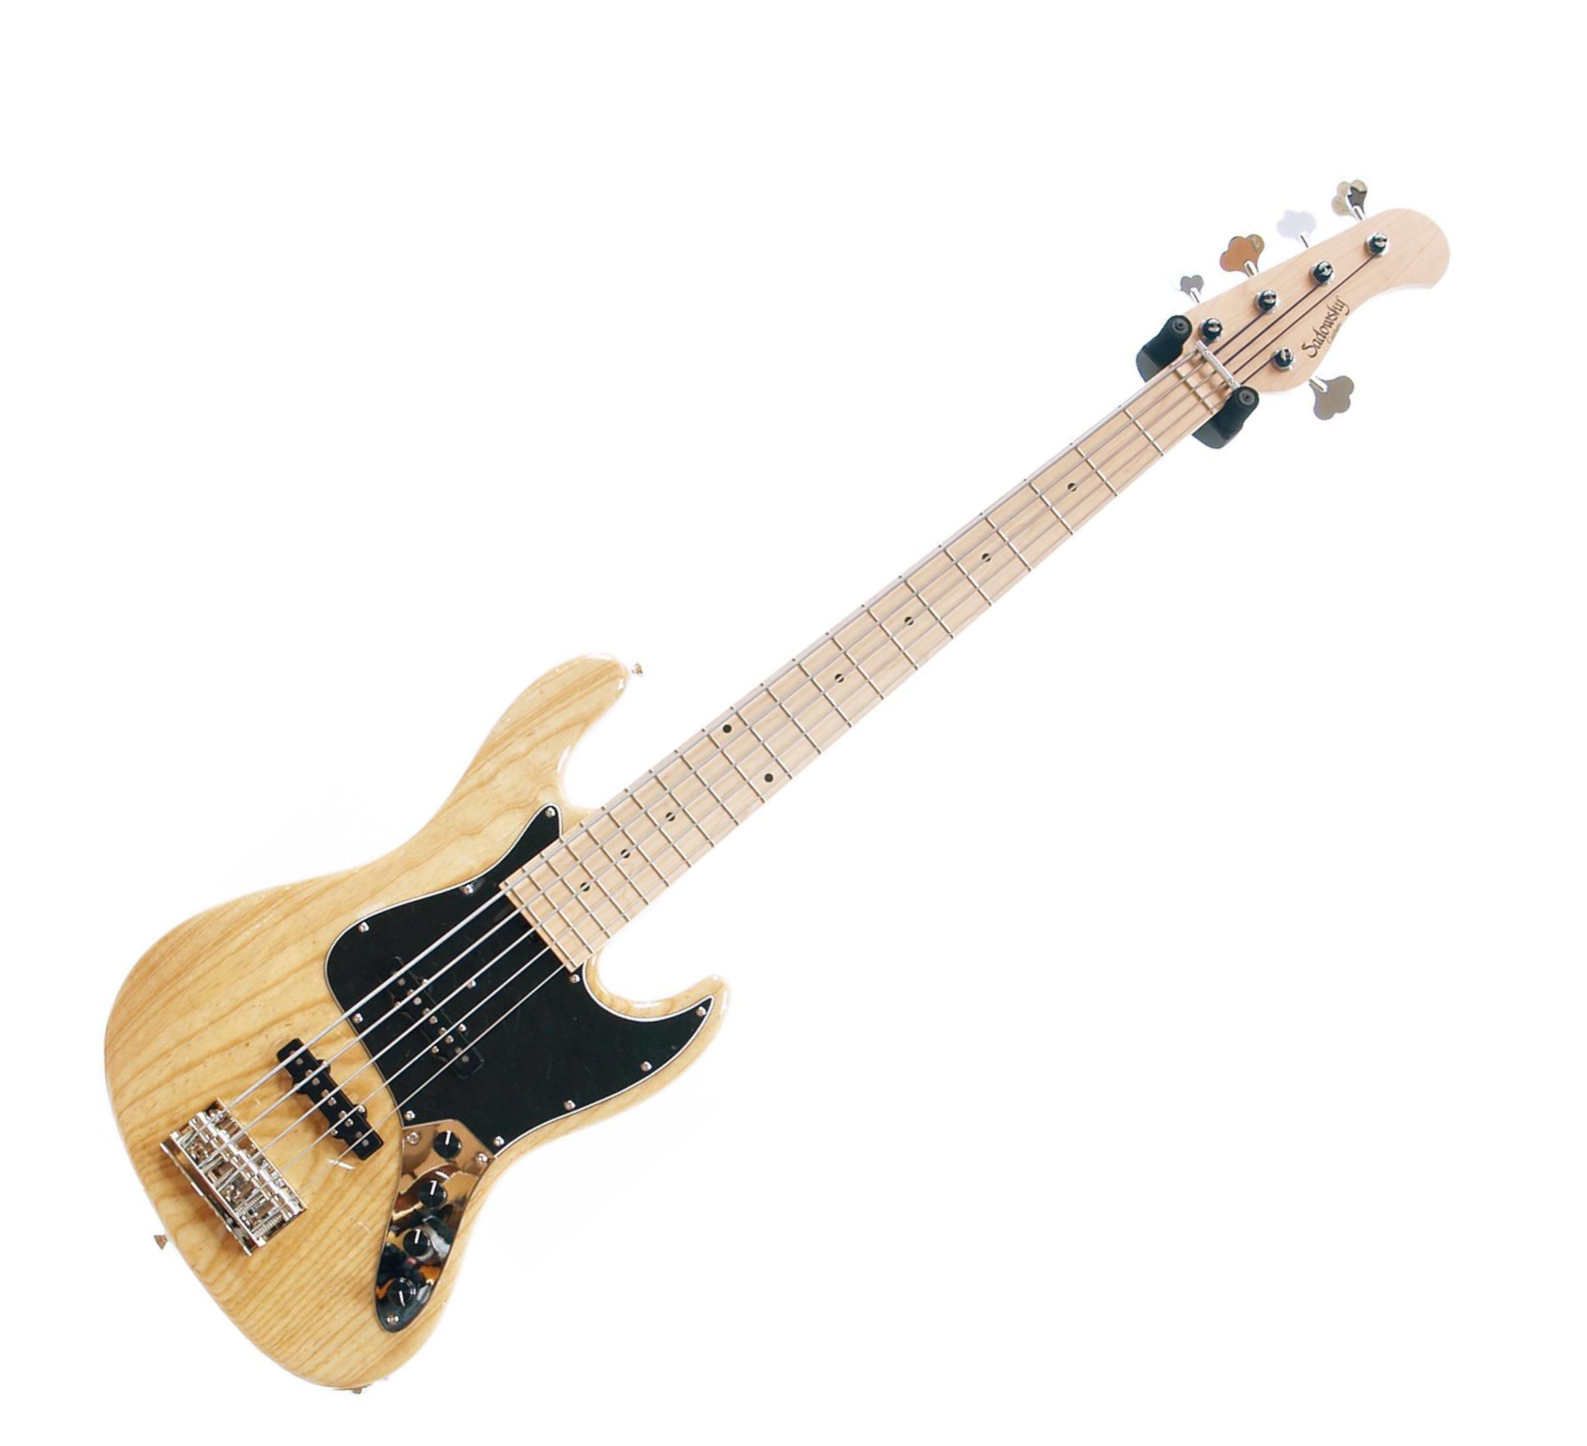 Bass Review - For Bassist : Sadowsky Metroline MV5 - 5 ... Sadowski